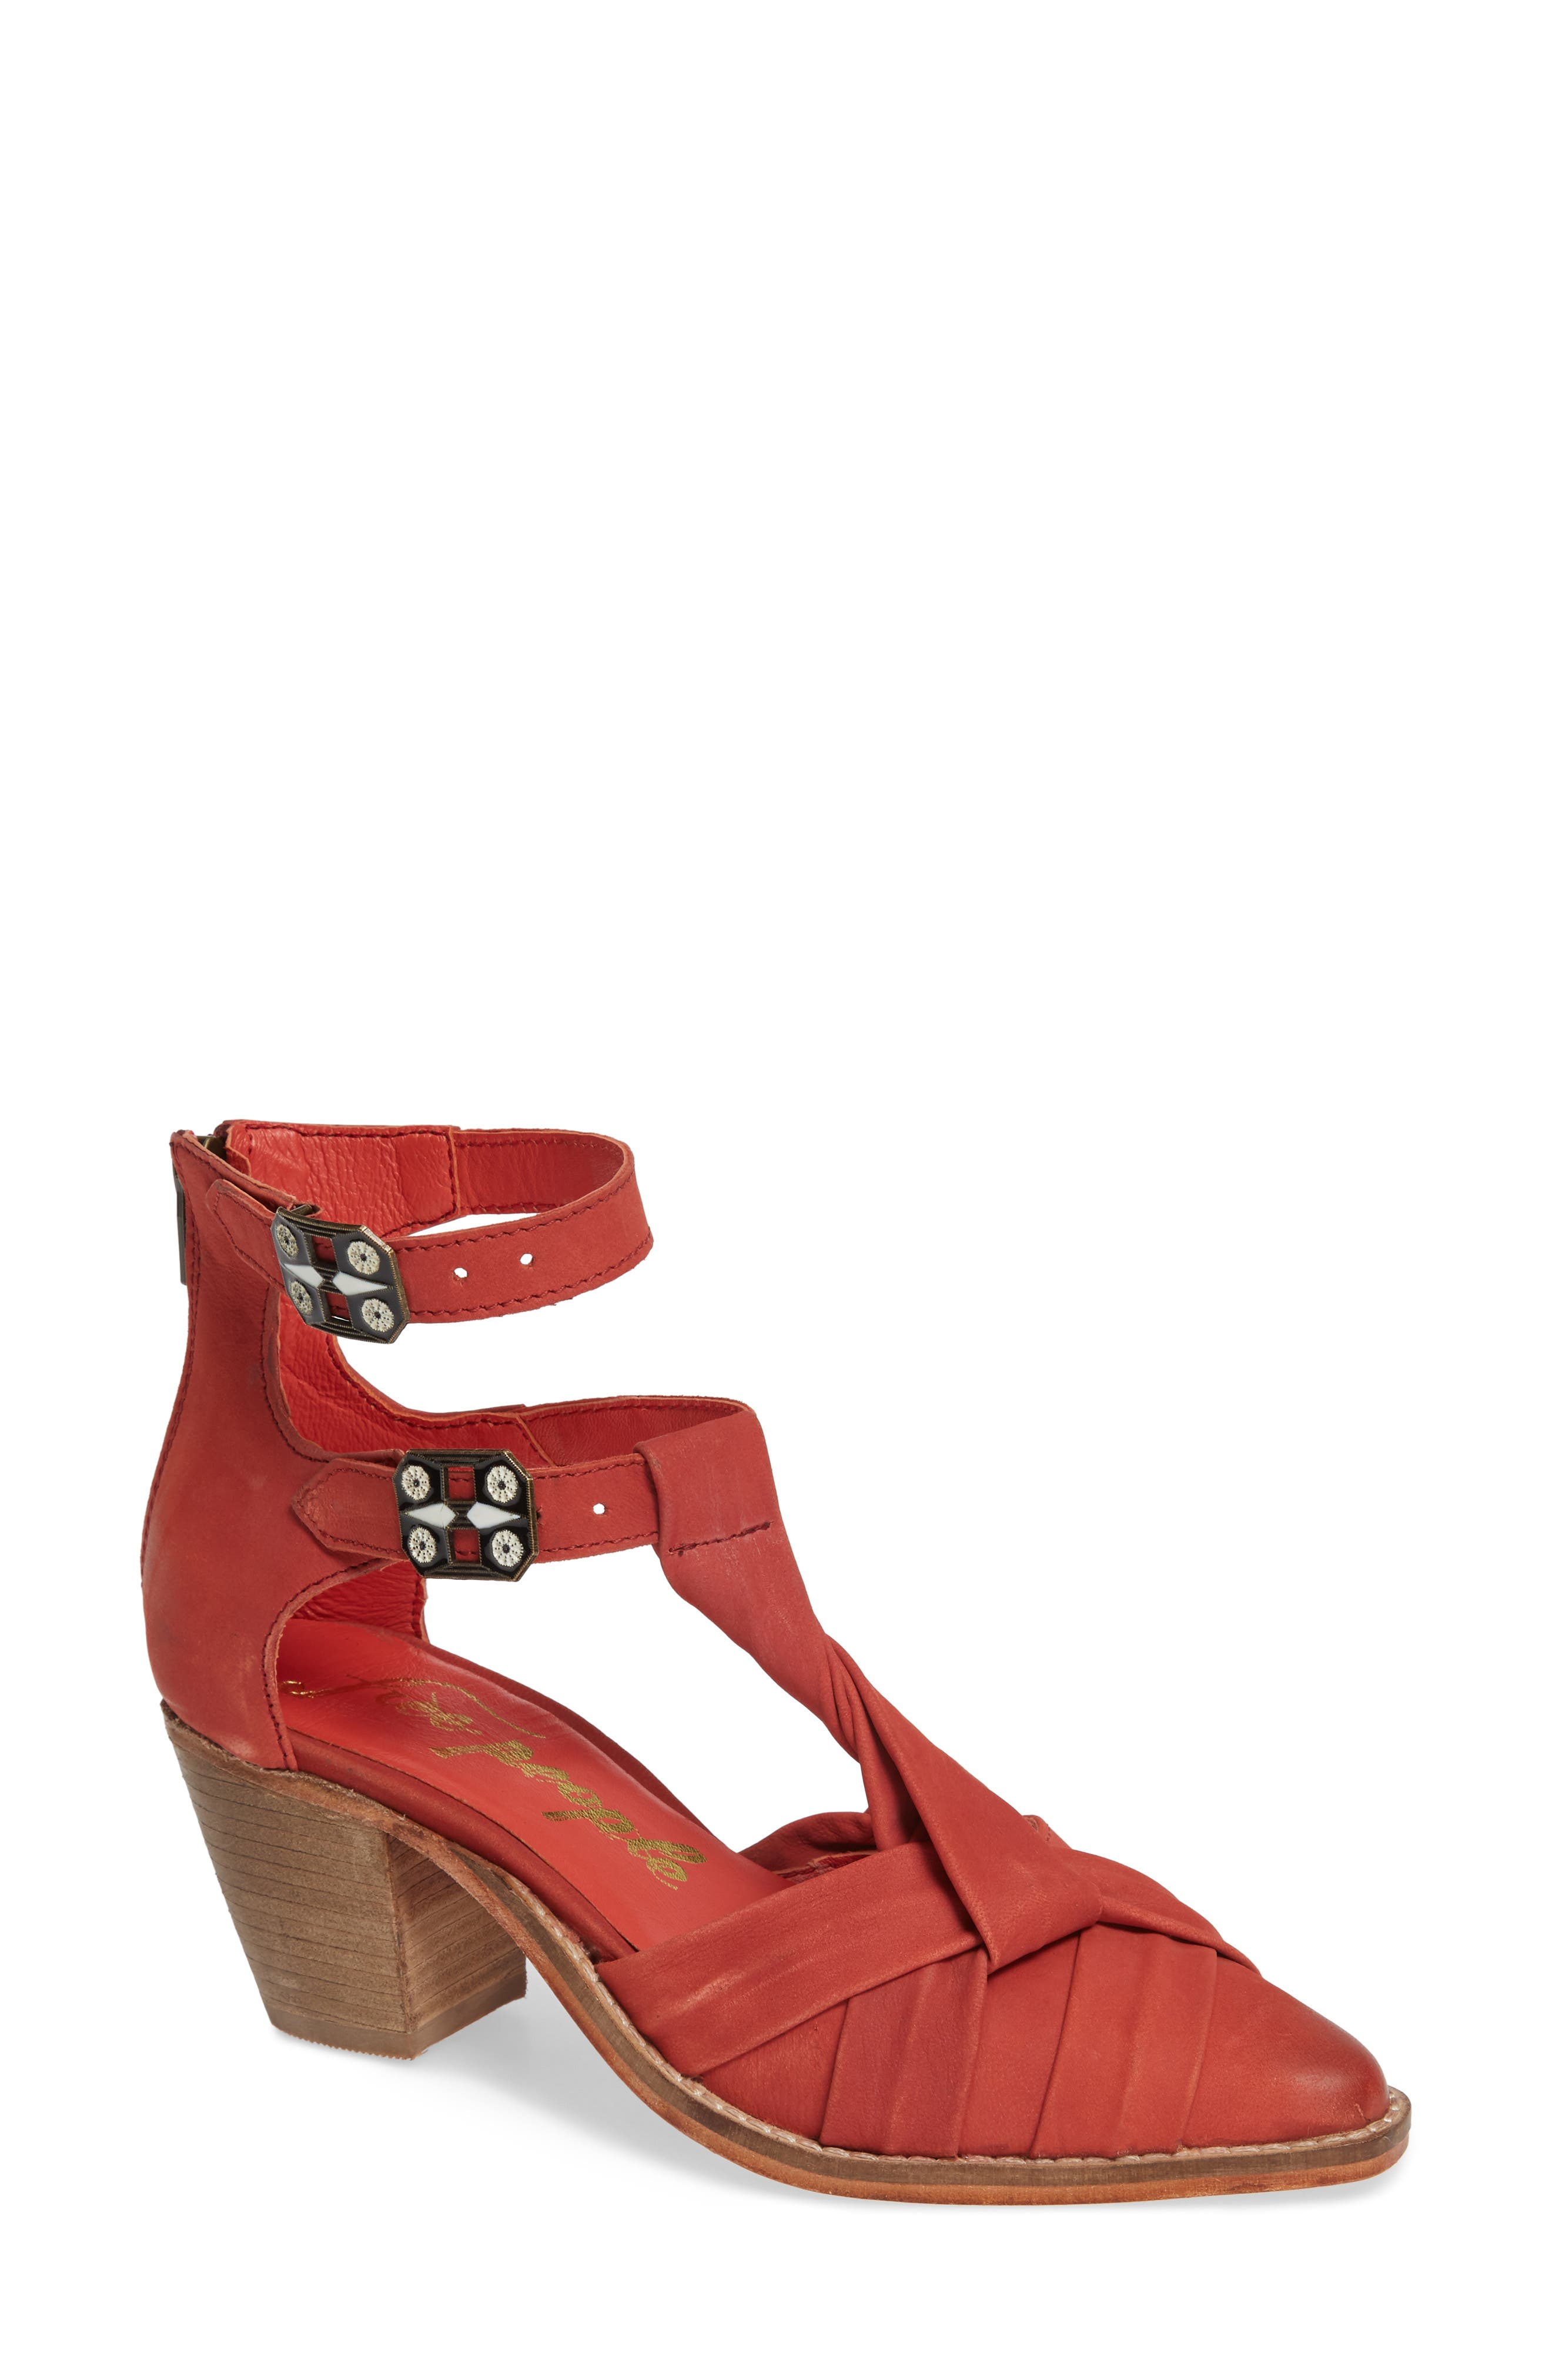 Free People Canosa Cutout Bootie, Red